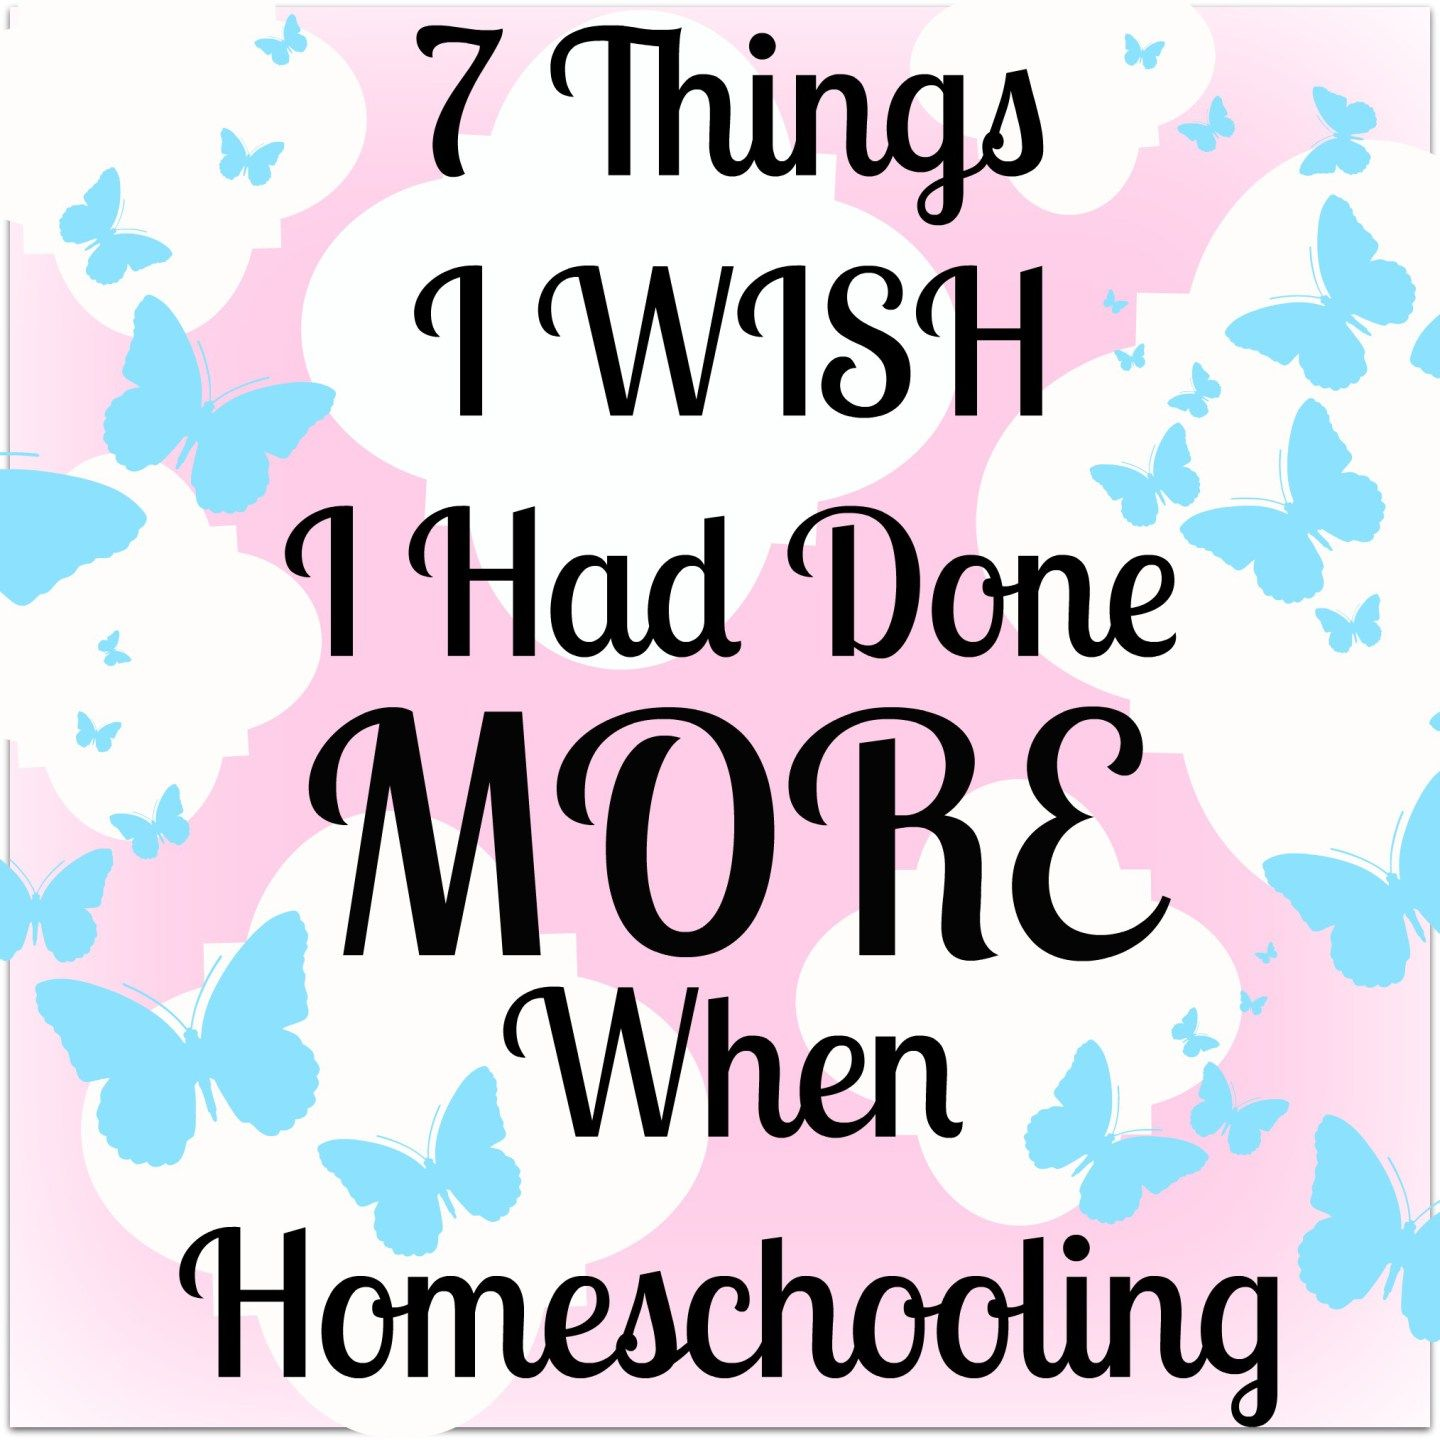 7 Things I Wish I Had Done More When Homeschooling